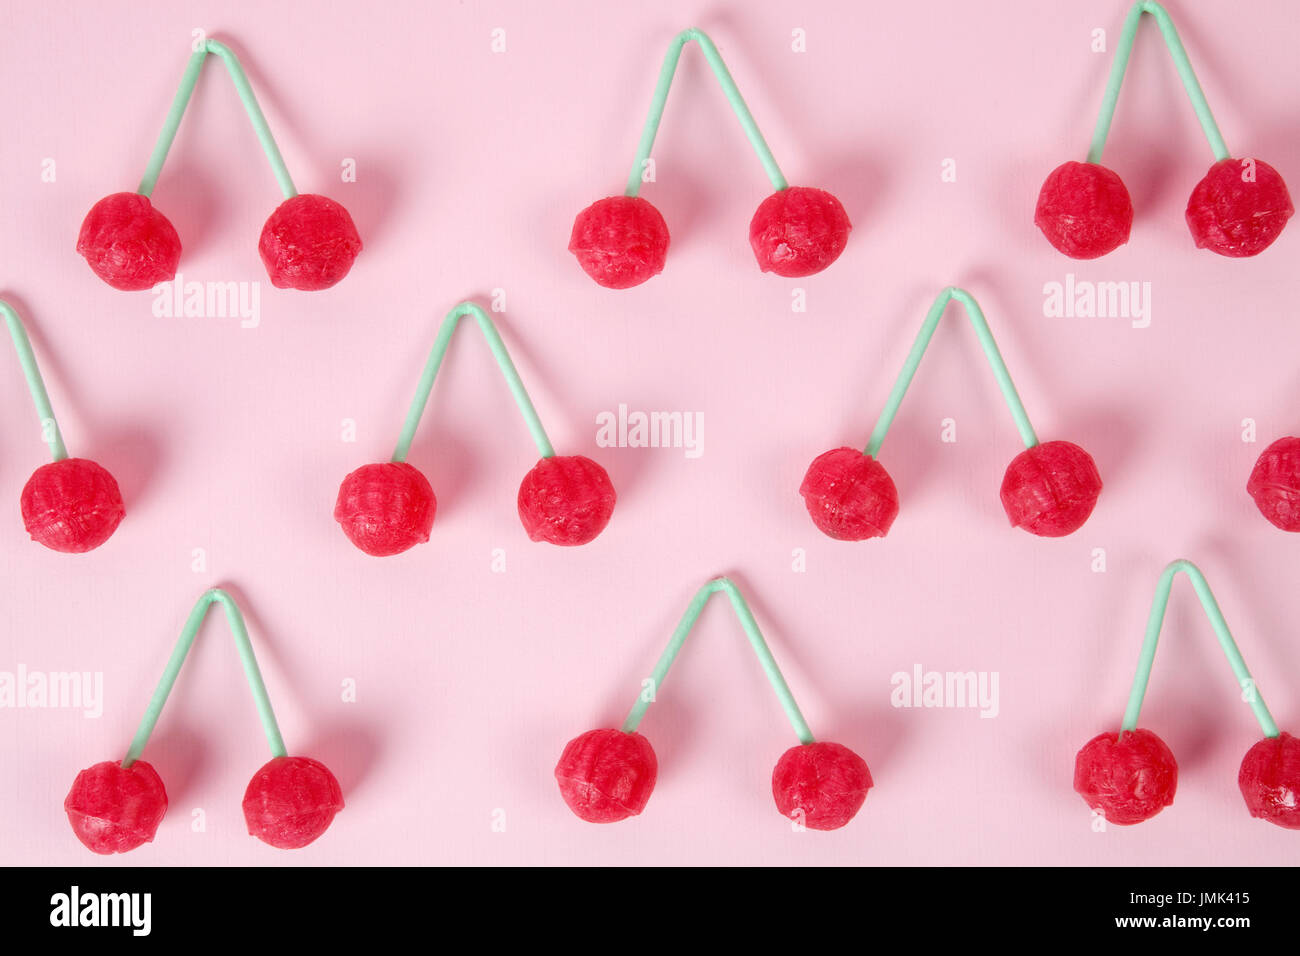 lot of Twin Cherry Lollipops like an old time ago on a pink background with blur effect. Minimal color still life - Stock Image